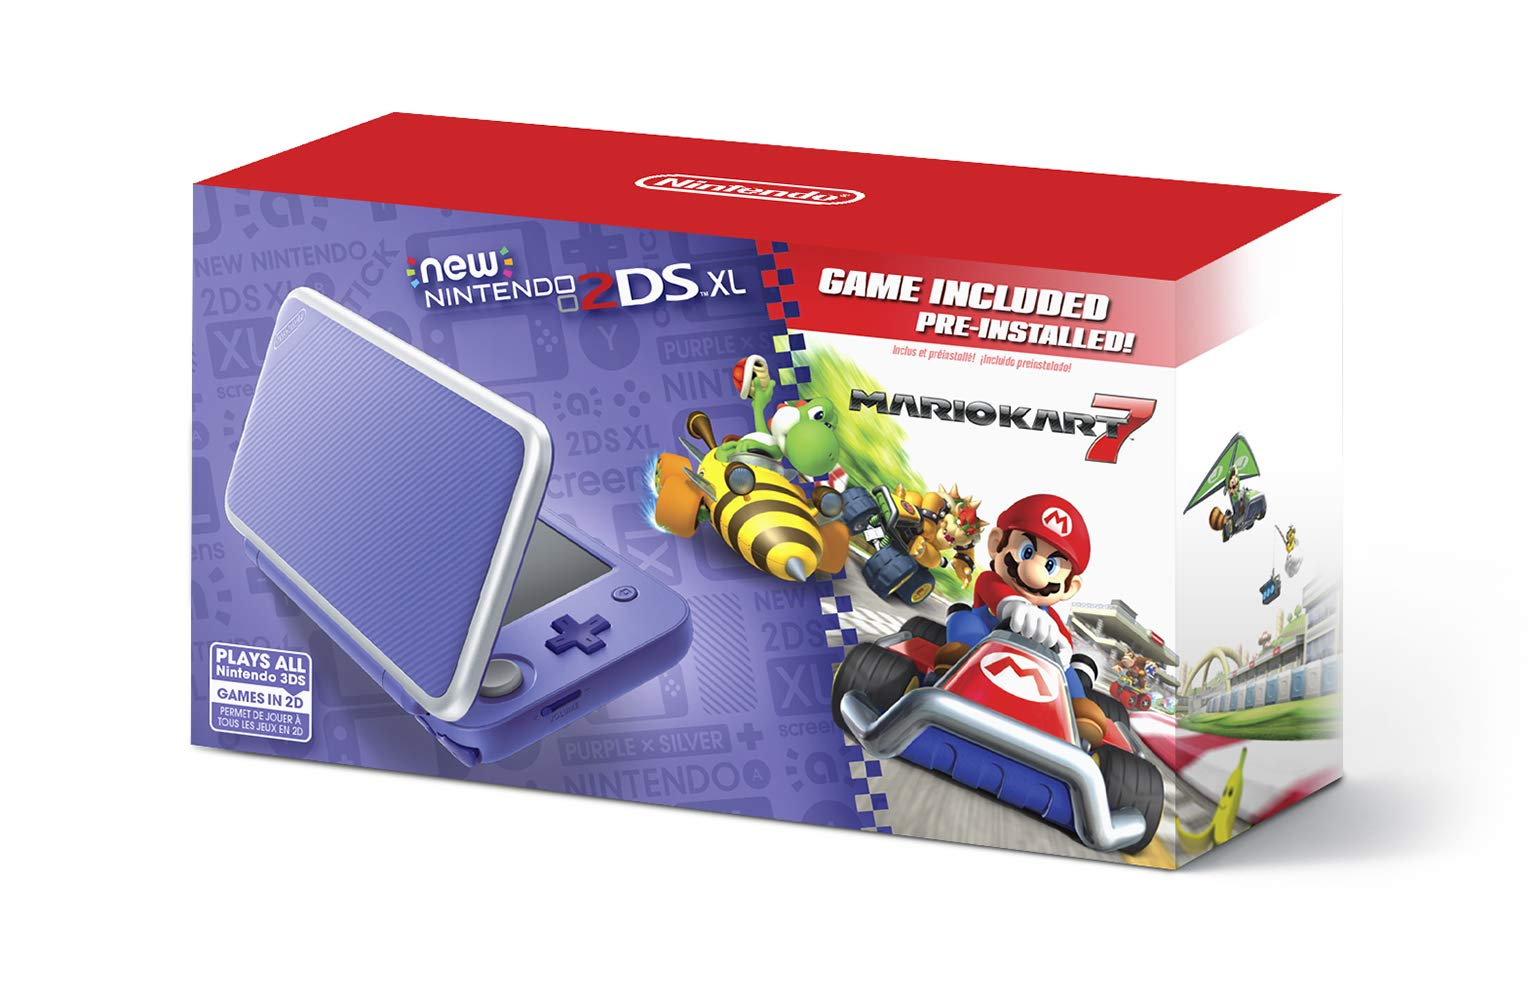 New Nintendo 2DS XL - Purple + Silver With Mario Kart 7 Pre-installed - Nintendo 2DS by Nintendo (Image #1)